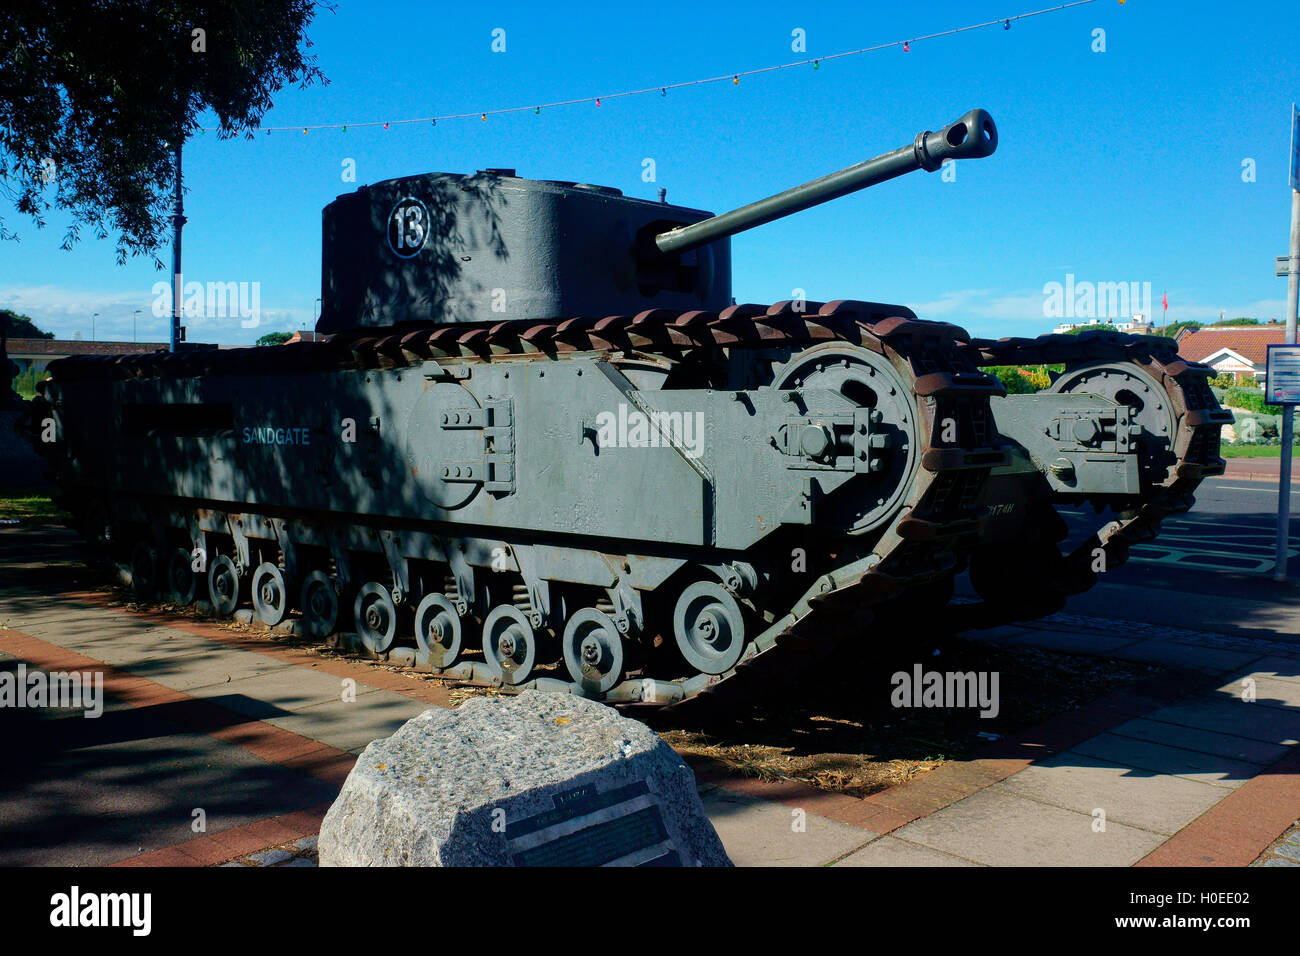 CHURCHILL MK VII CROCODILE FLAME THROWER TANK Stock Photo